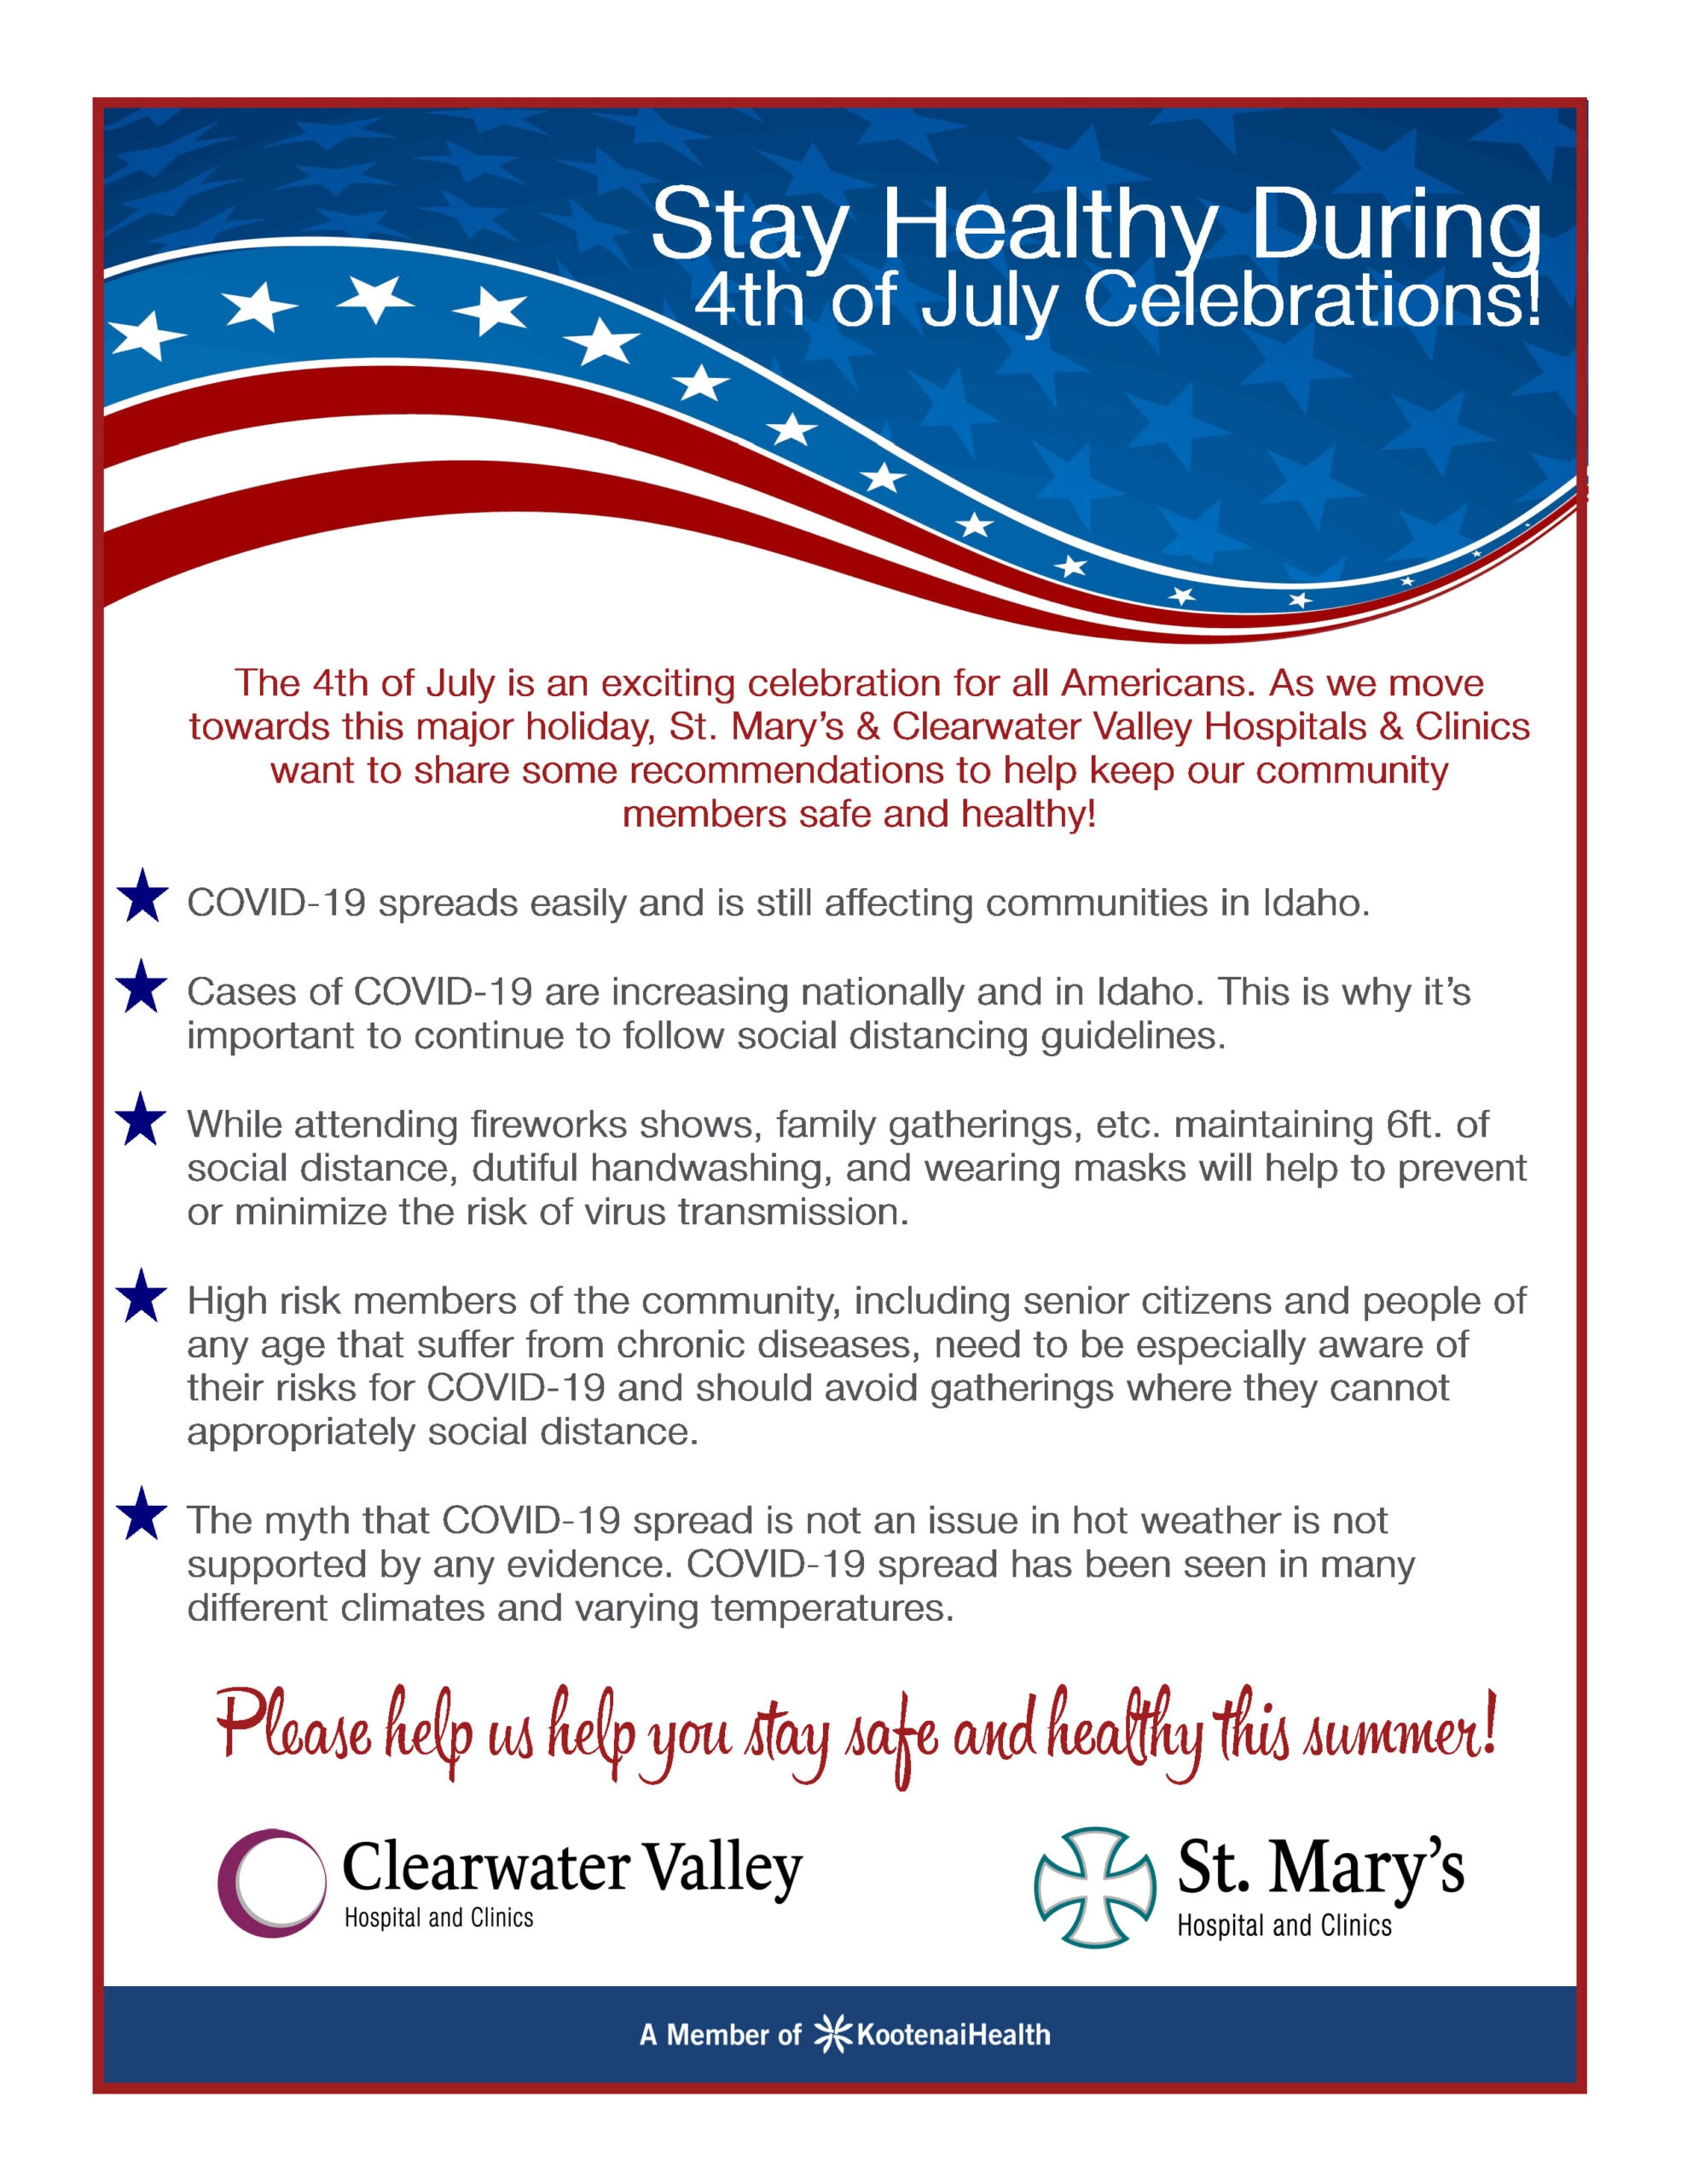 4th of July Safety During COVID